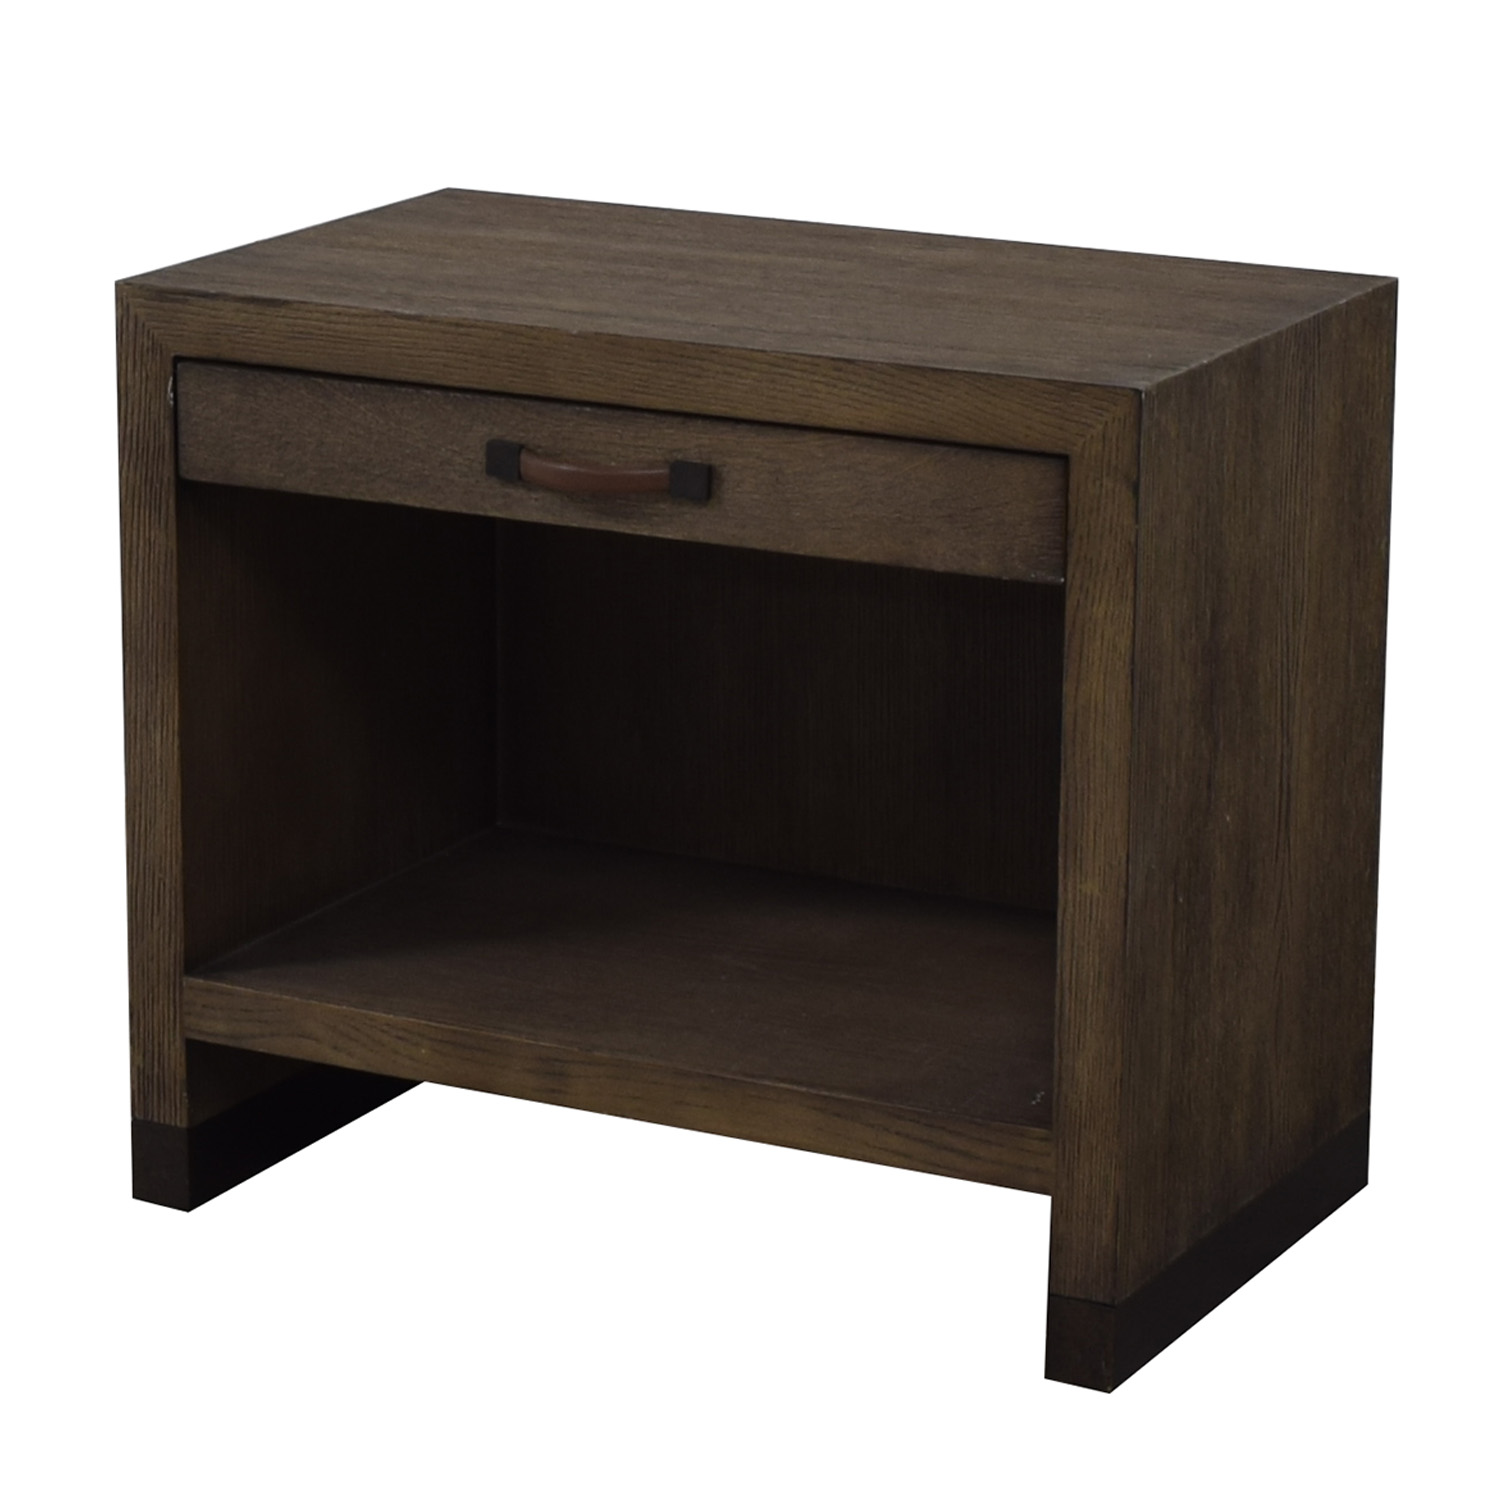 Lillian August Lillian August For Hickory White Conner Grey Nightstand brown